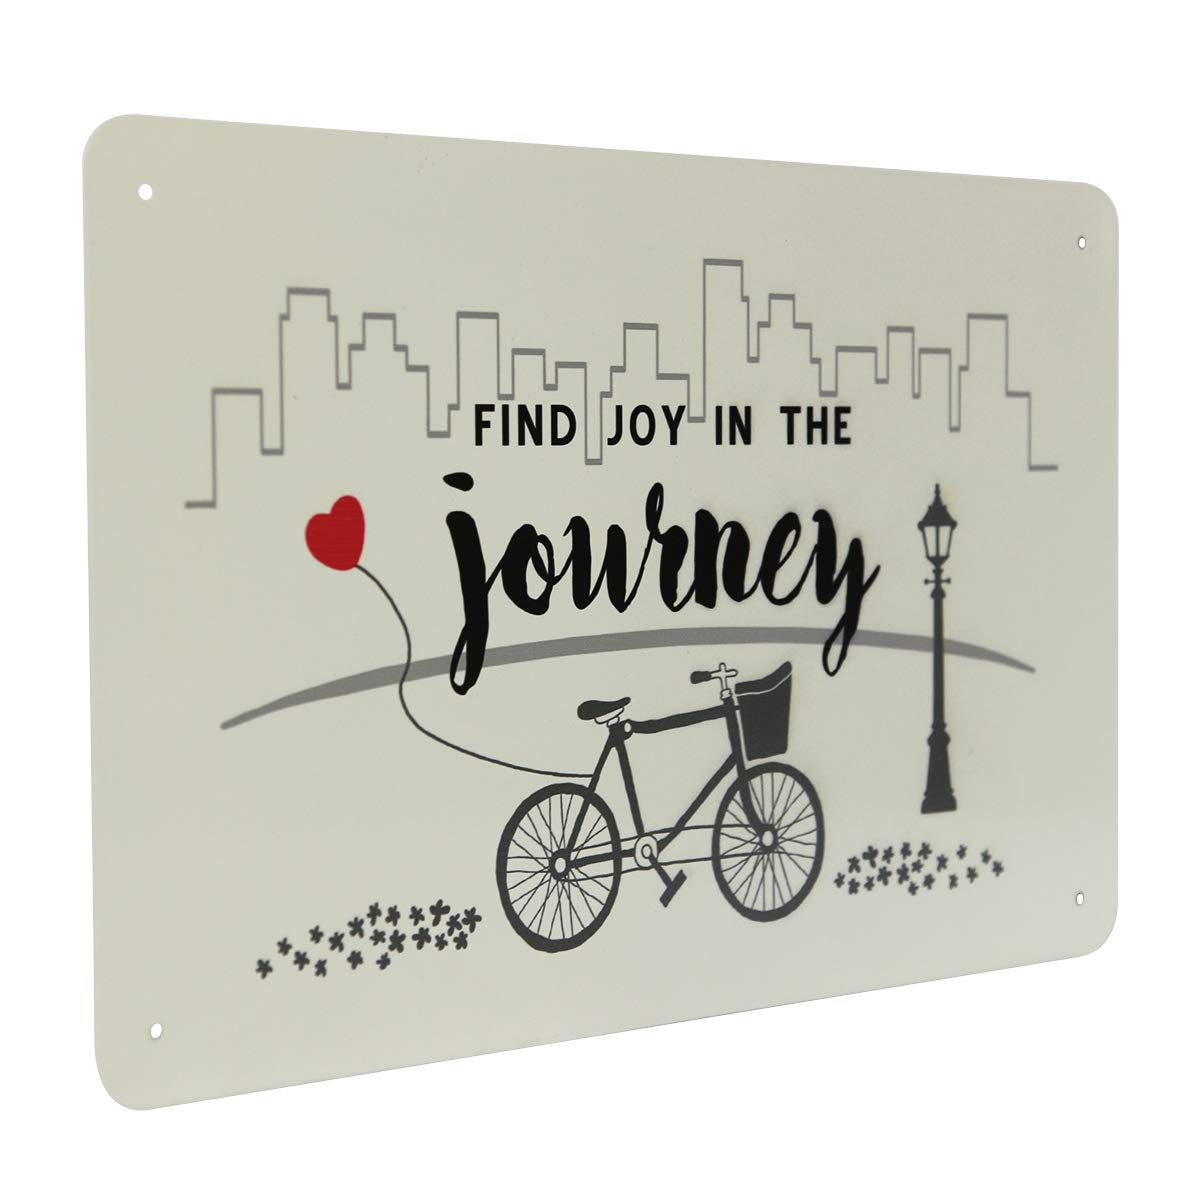 NIKKY HOME 15 x 9 Metal Wall Sign Plaque with Inspirational Quote Find Joy in The Journey Bicycle Decor